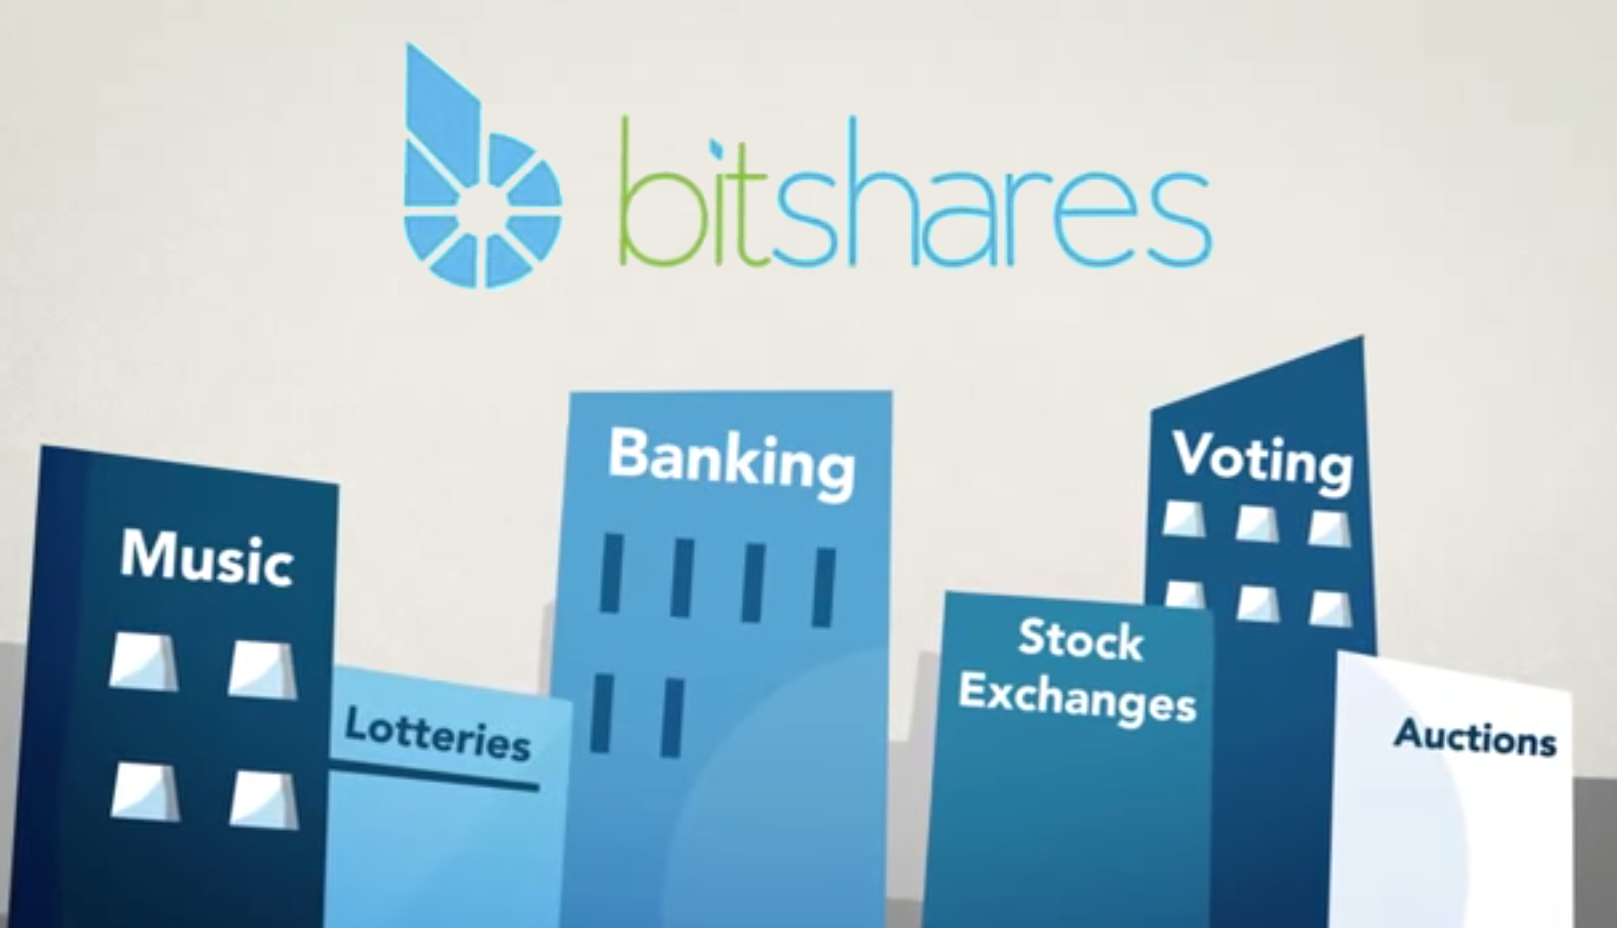 bitshares - Google Search